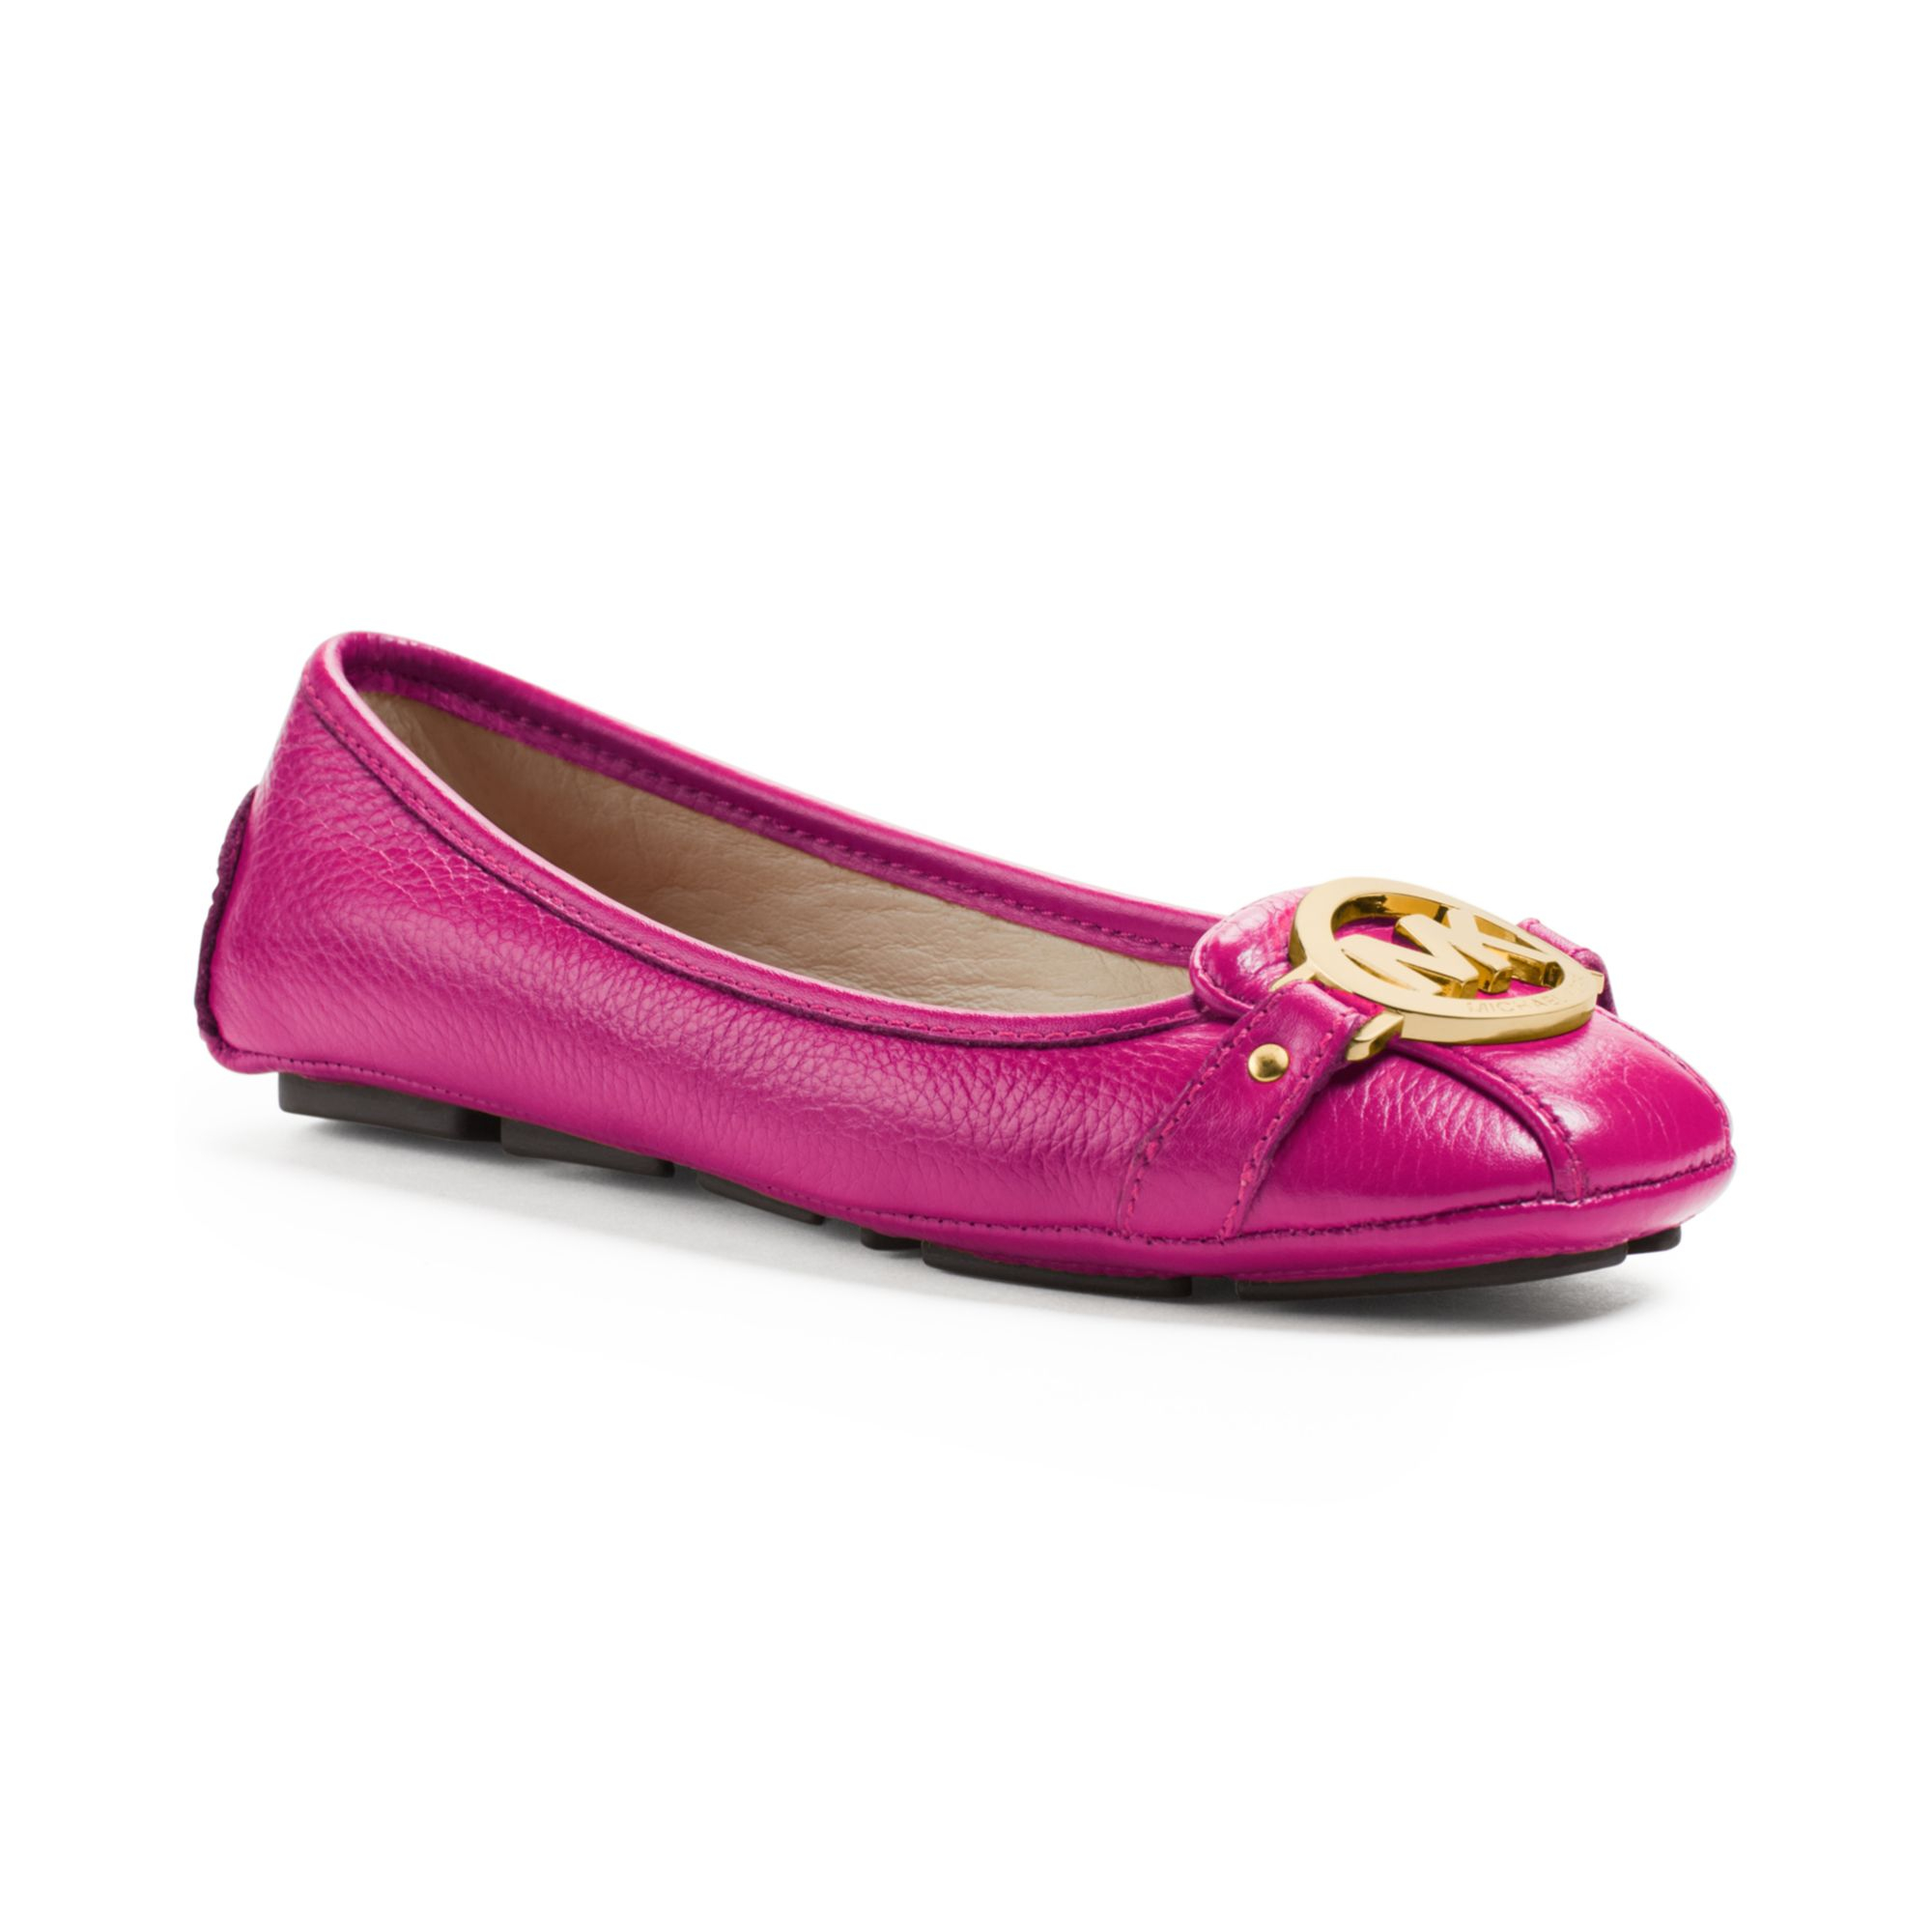 Michael Kors Michael Fulton Moc Flats Fuschia besides 10 Most Beautiful Swedish Women moreover Sergio Garcia Angela Akins Expecting First Child together with Steve Madden Nessie Ankle Strap Wedge Sandals Cognac as well Paul Smith Men Edt P 344. on oscar de la renta man